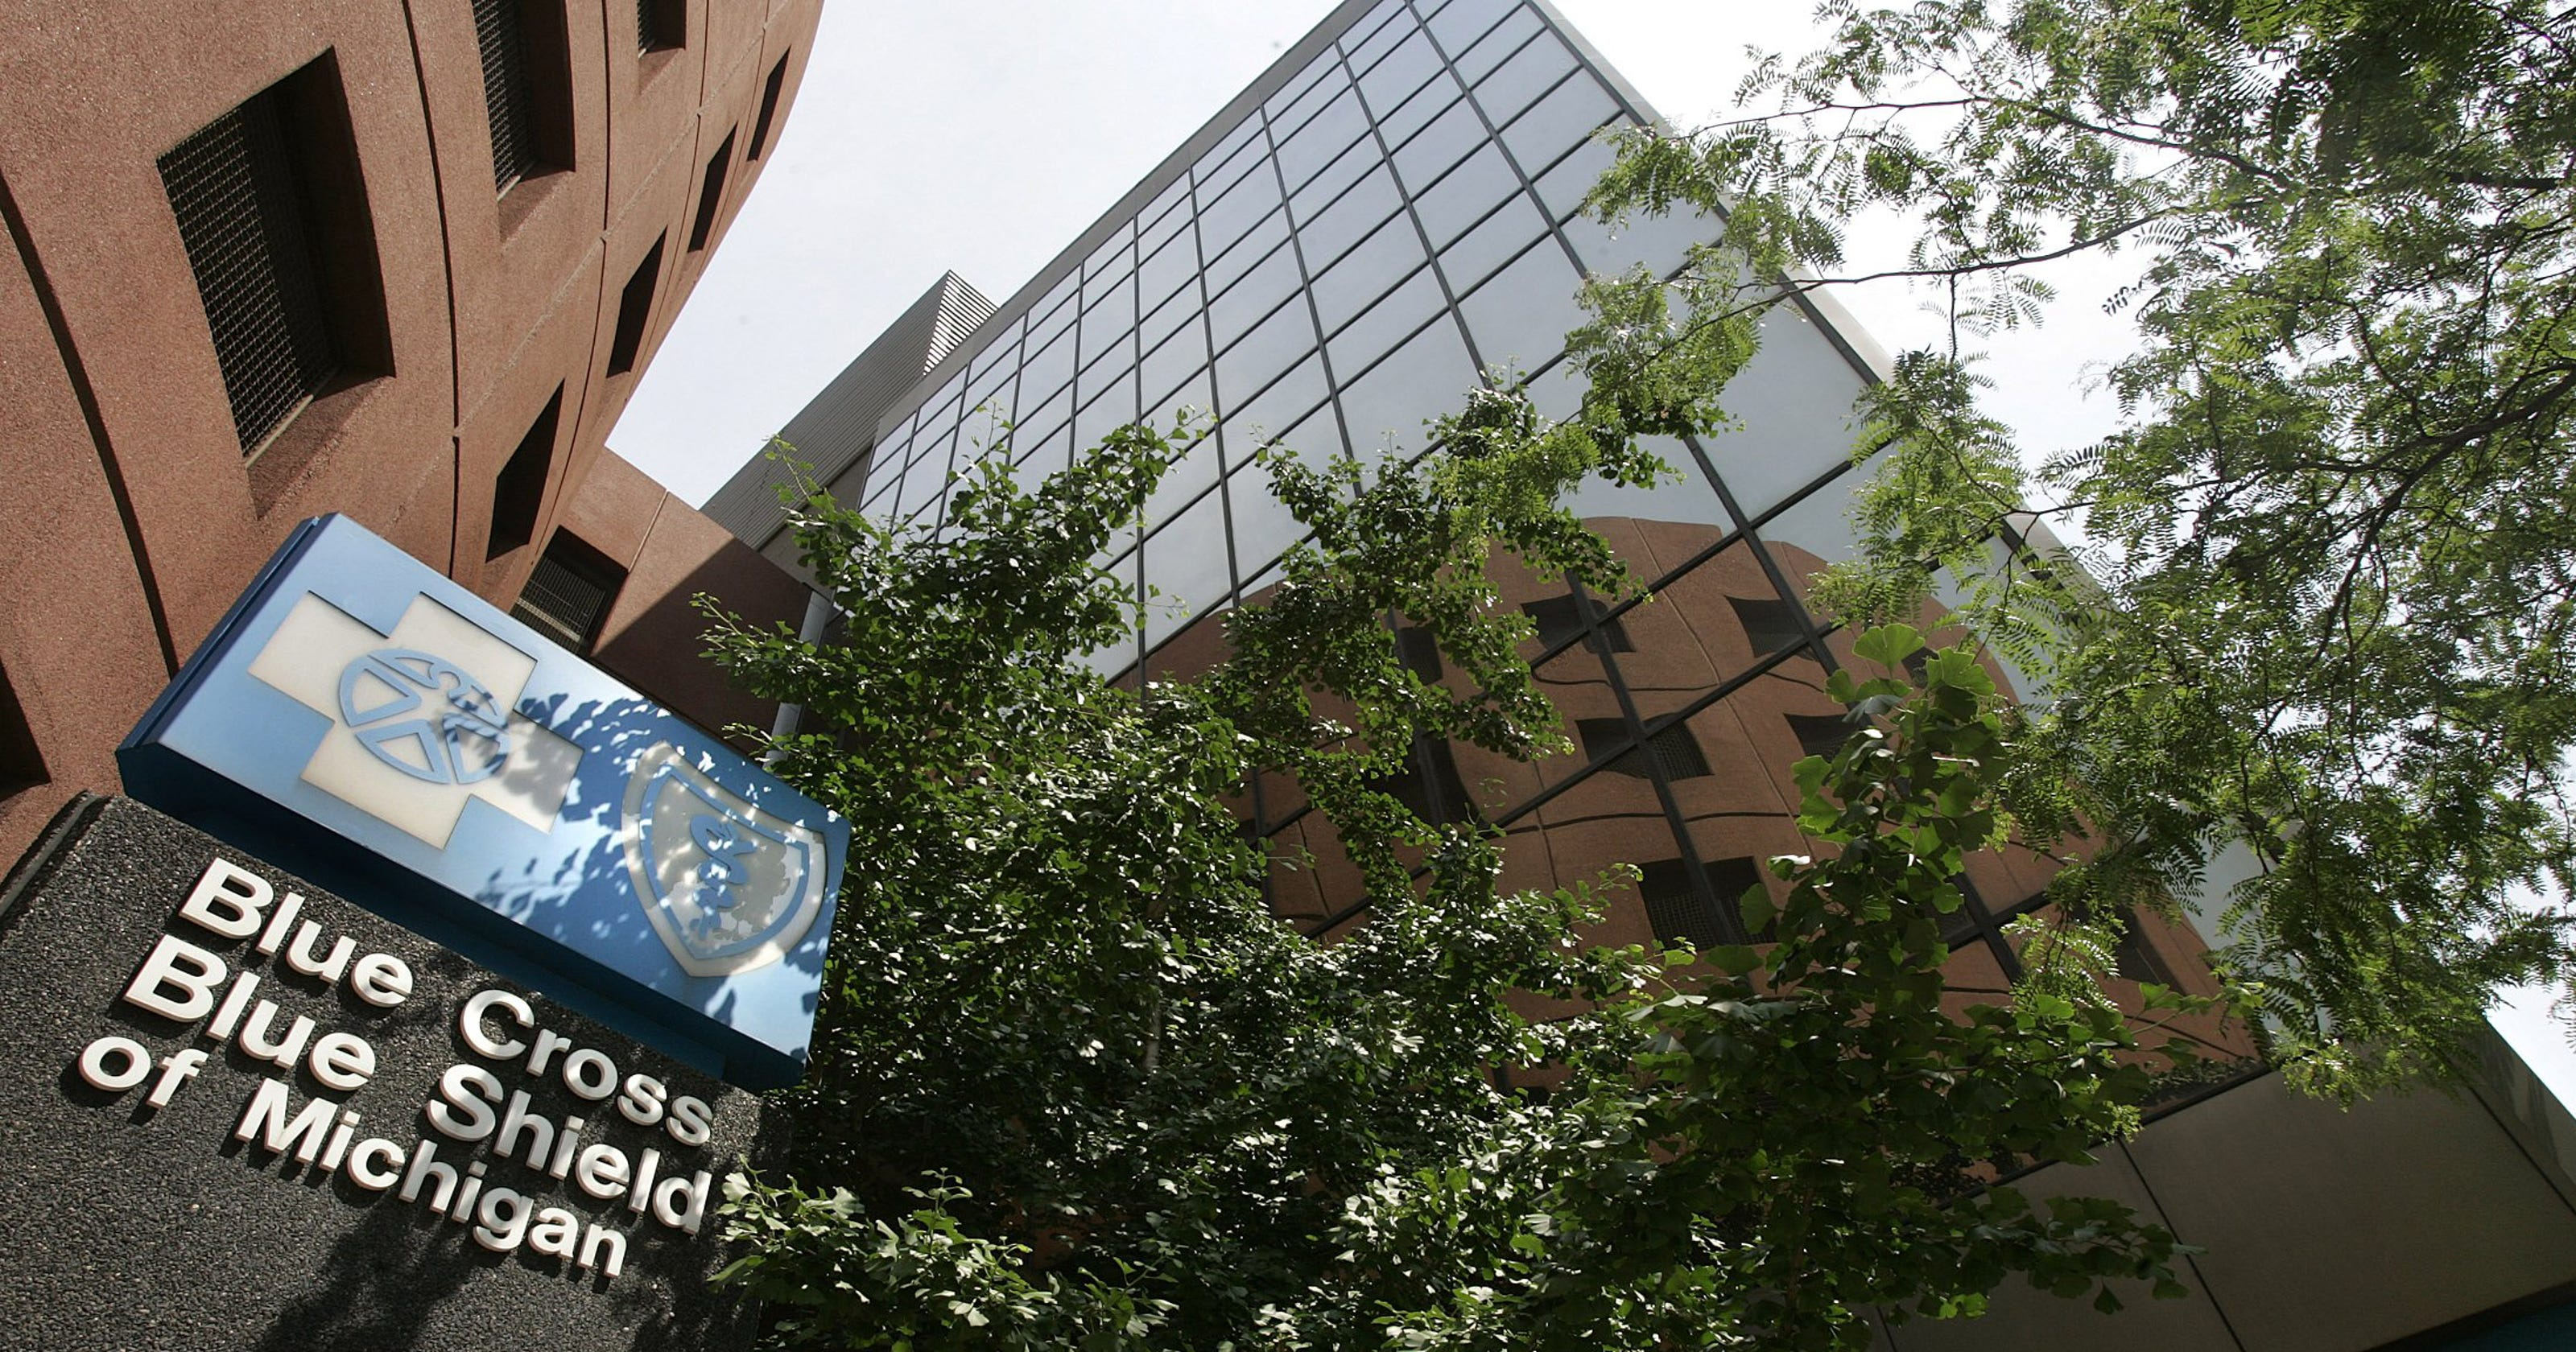 Blue Cross plans Medigap rate hikes on seniors, up to $315